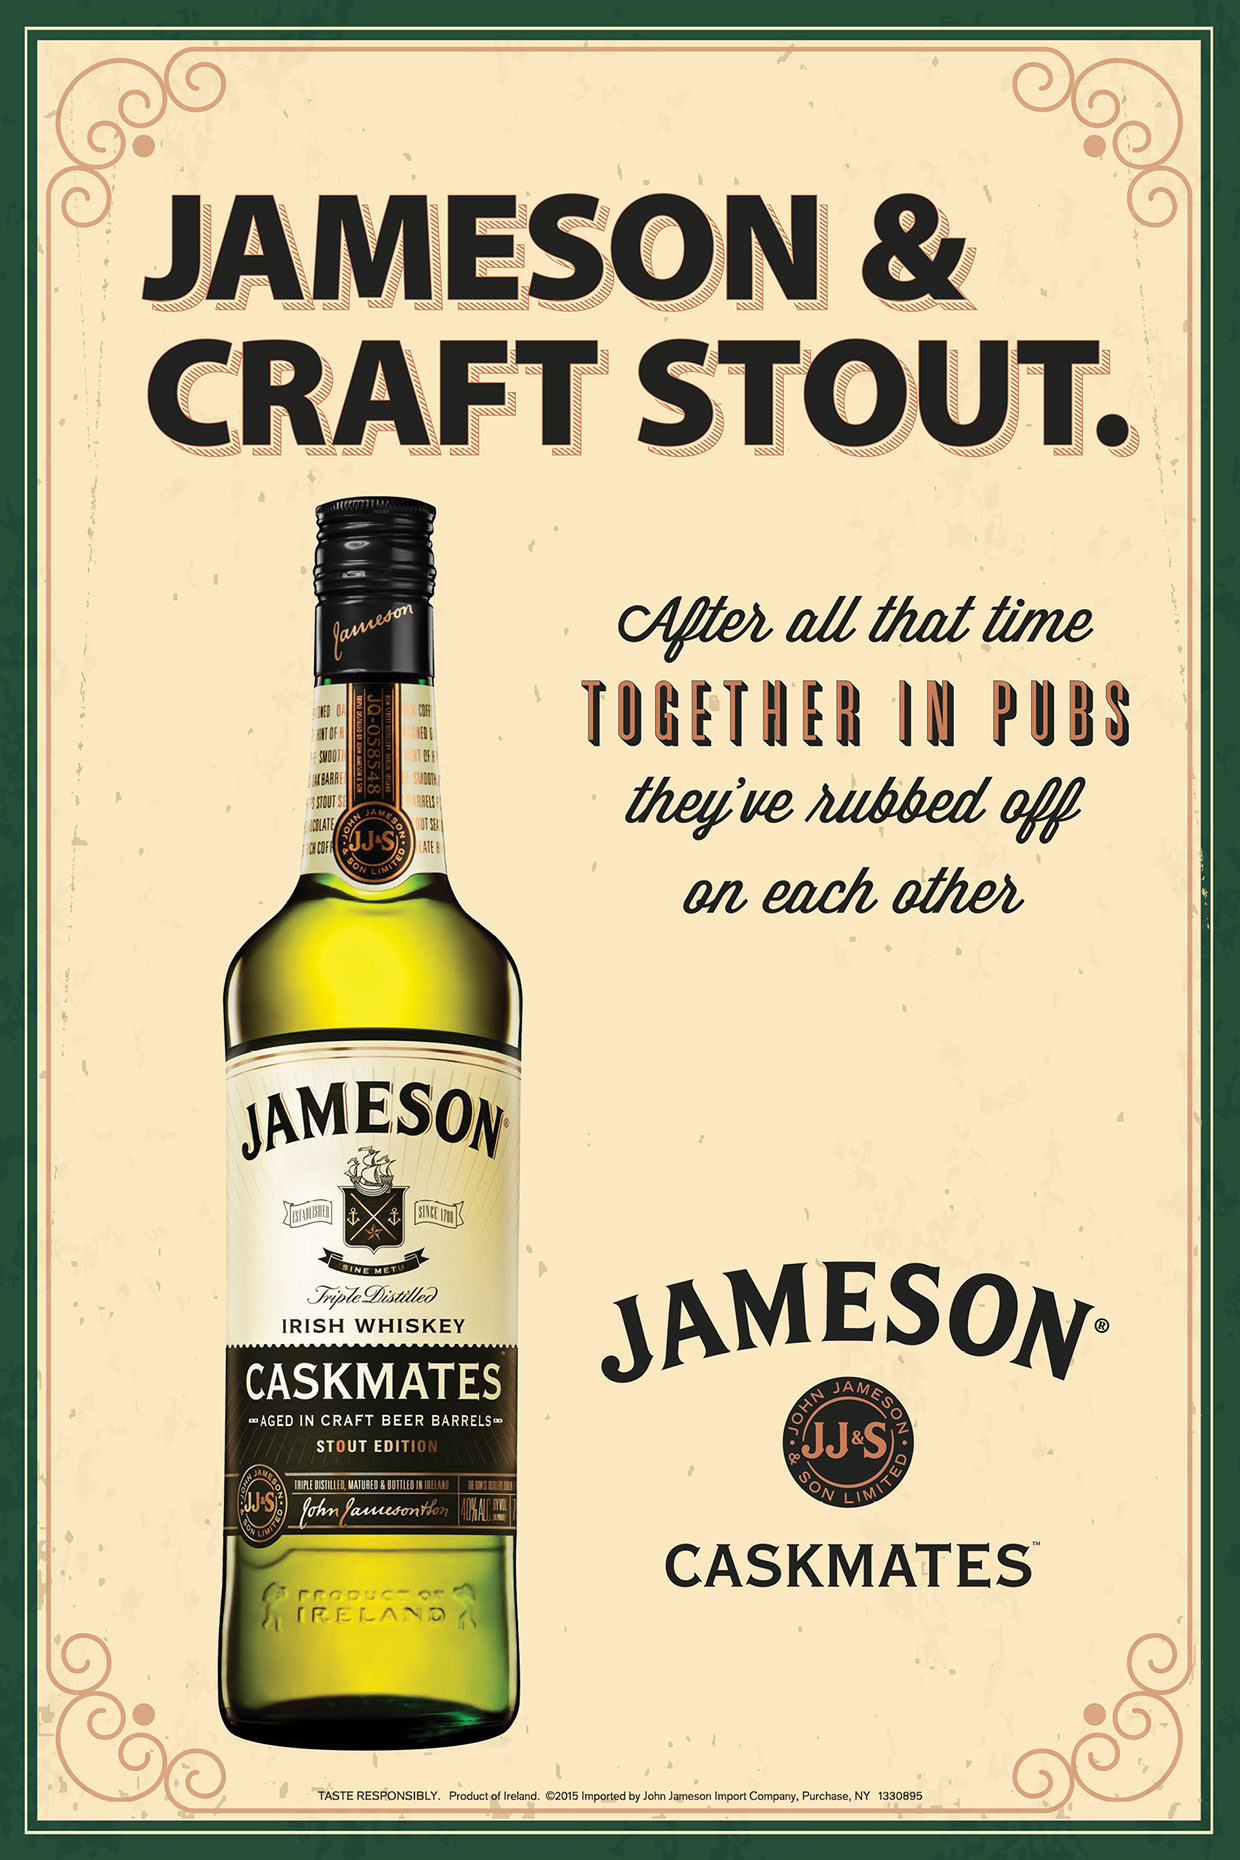 Try Jameson Caskmates!!!